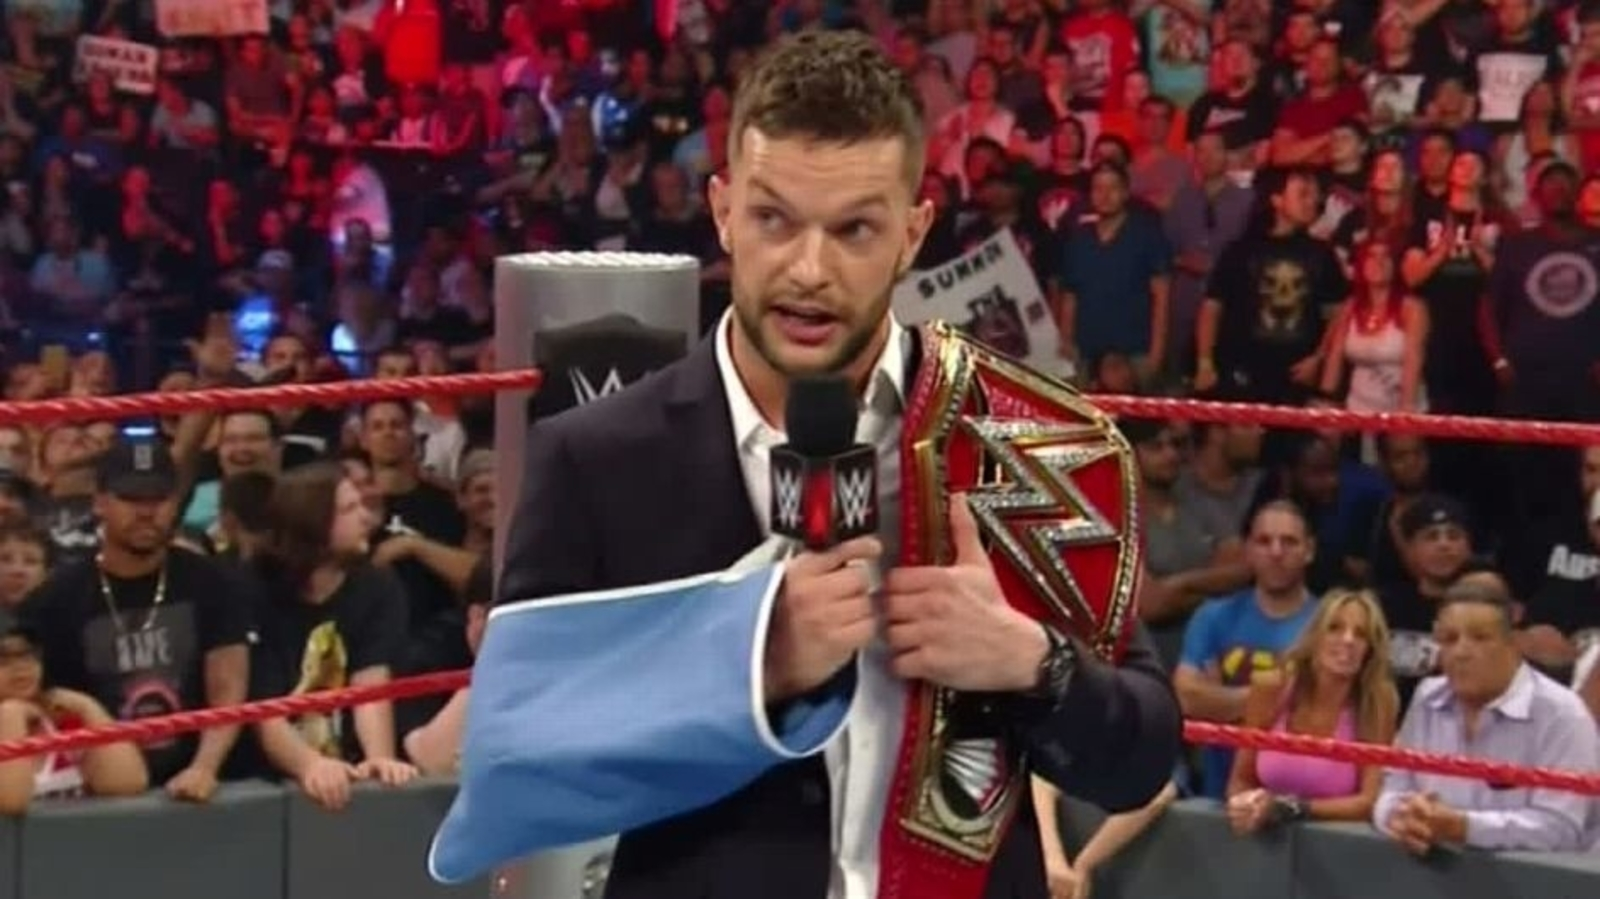 Photo of Finn Balor's Injury: Every Cloud has a Silver Lining